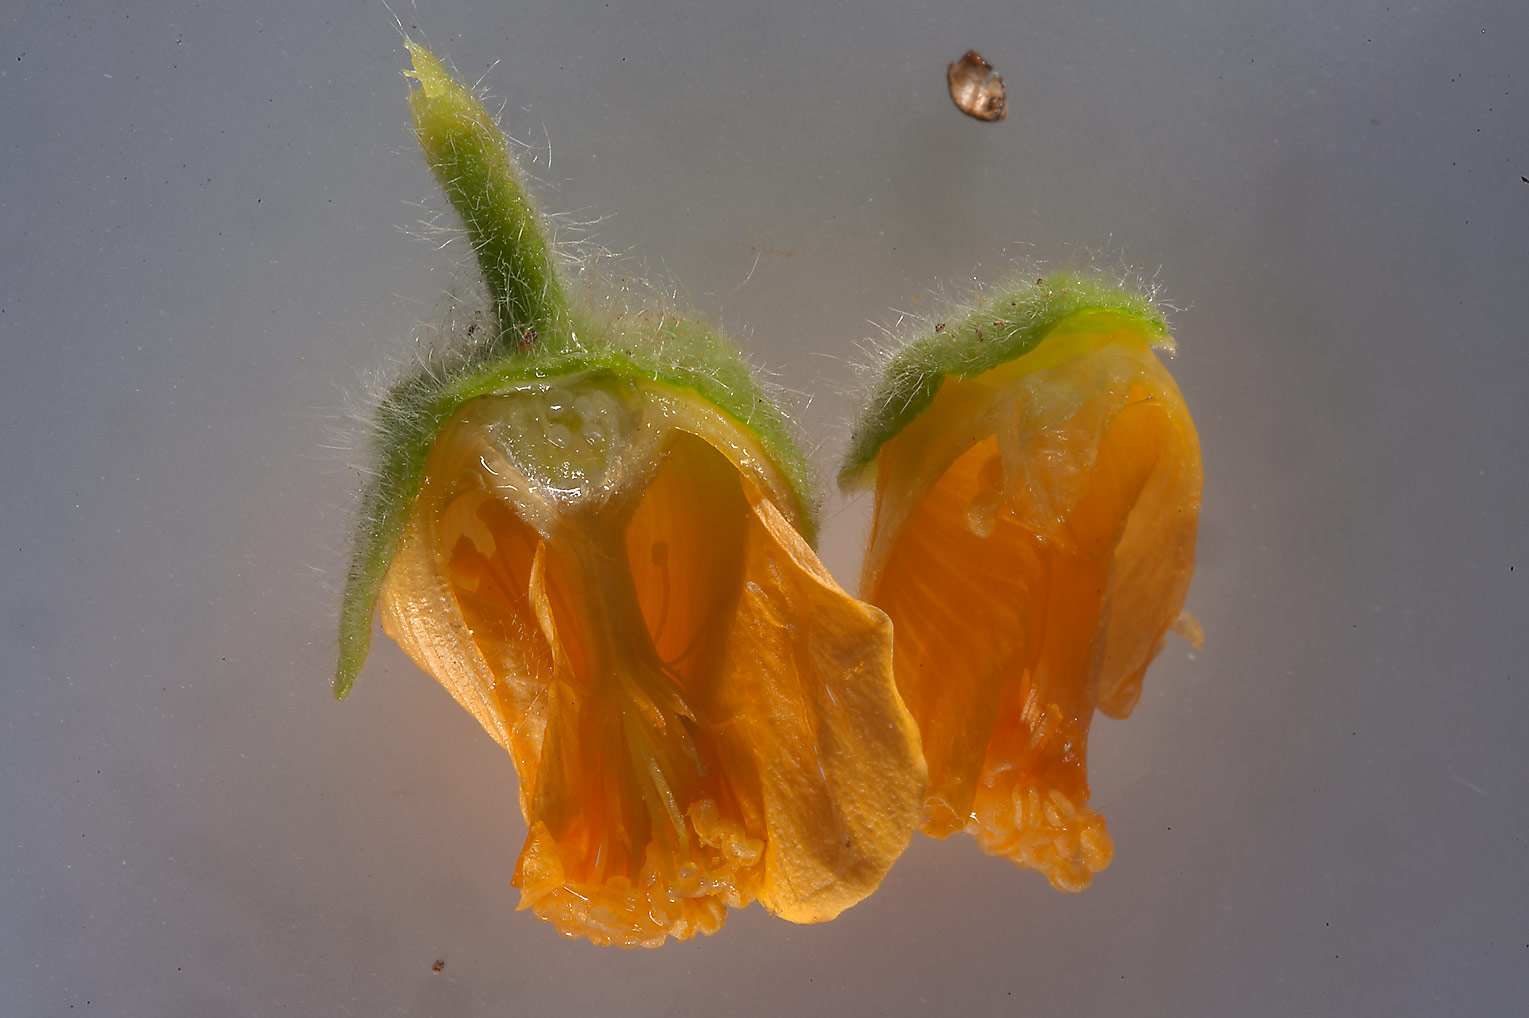 Dissected flower of velvetleaf (Abutilon pannosum...area, north from Zekreet. Qatar